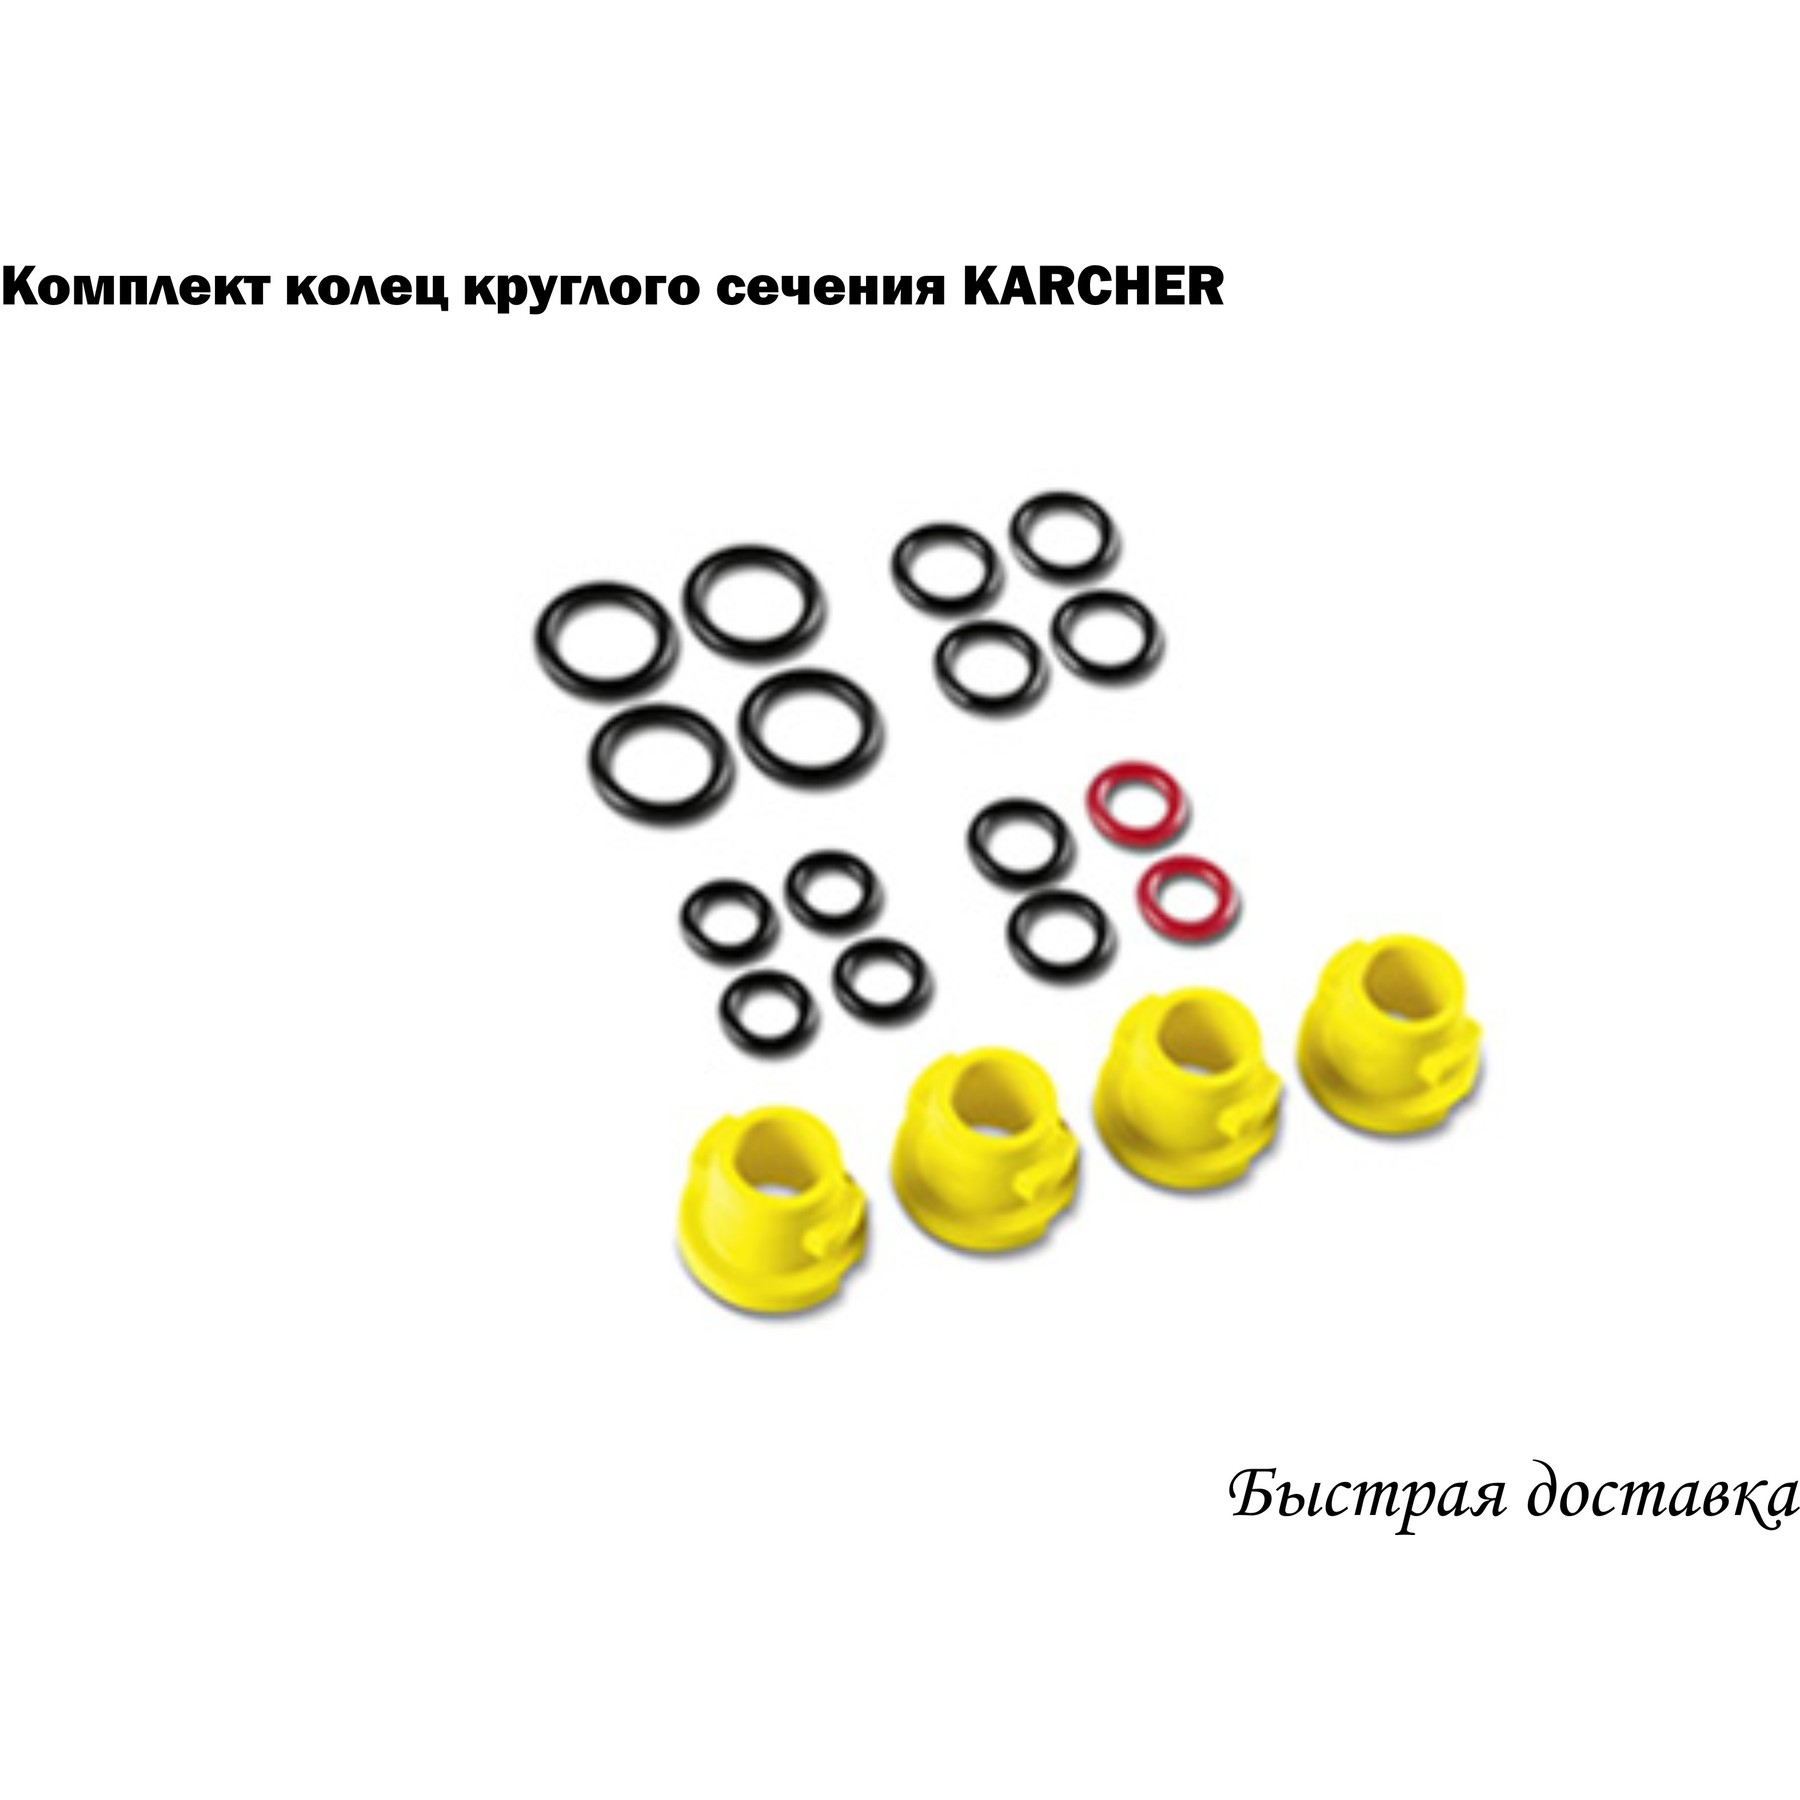 Set Of Spare Rings Round Cut. Karcher (2.640-729.0). Fast Shipping